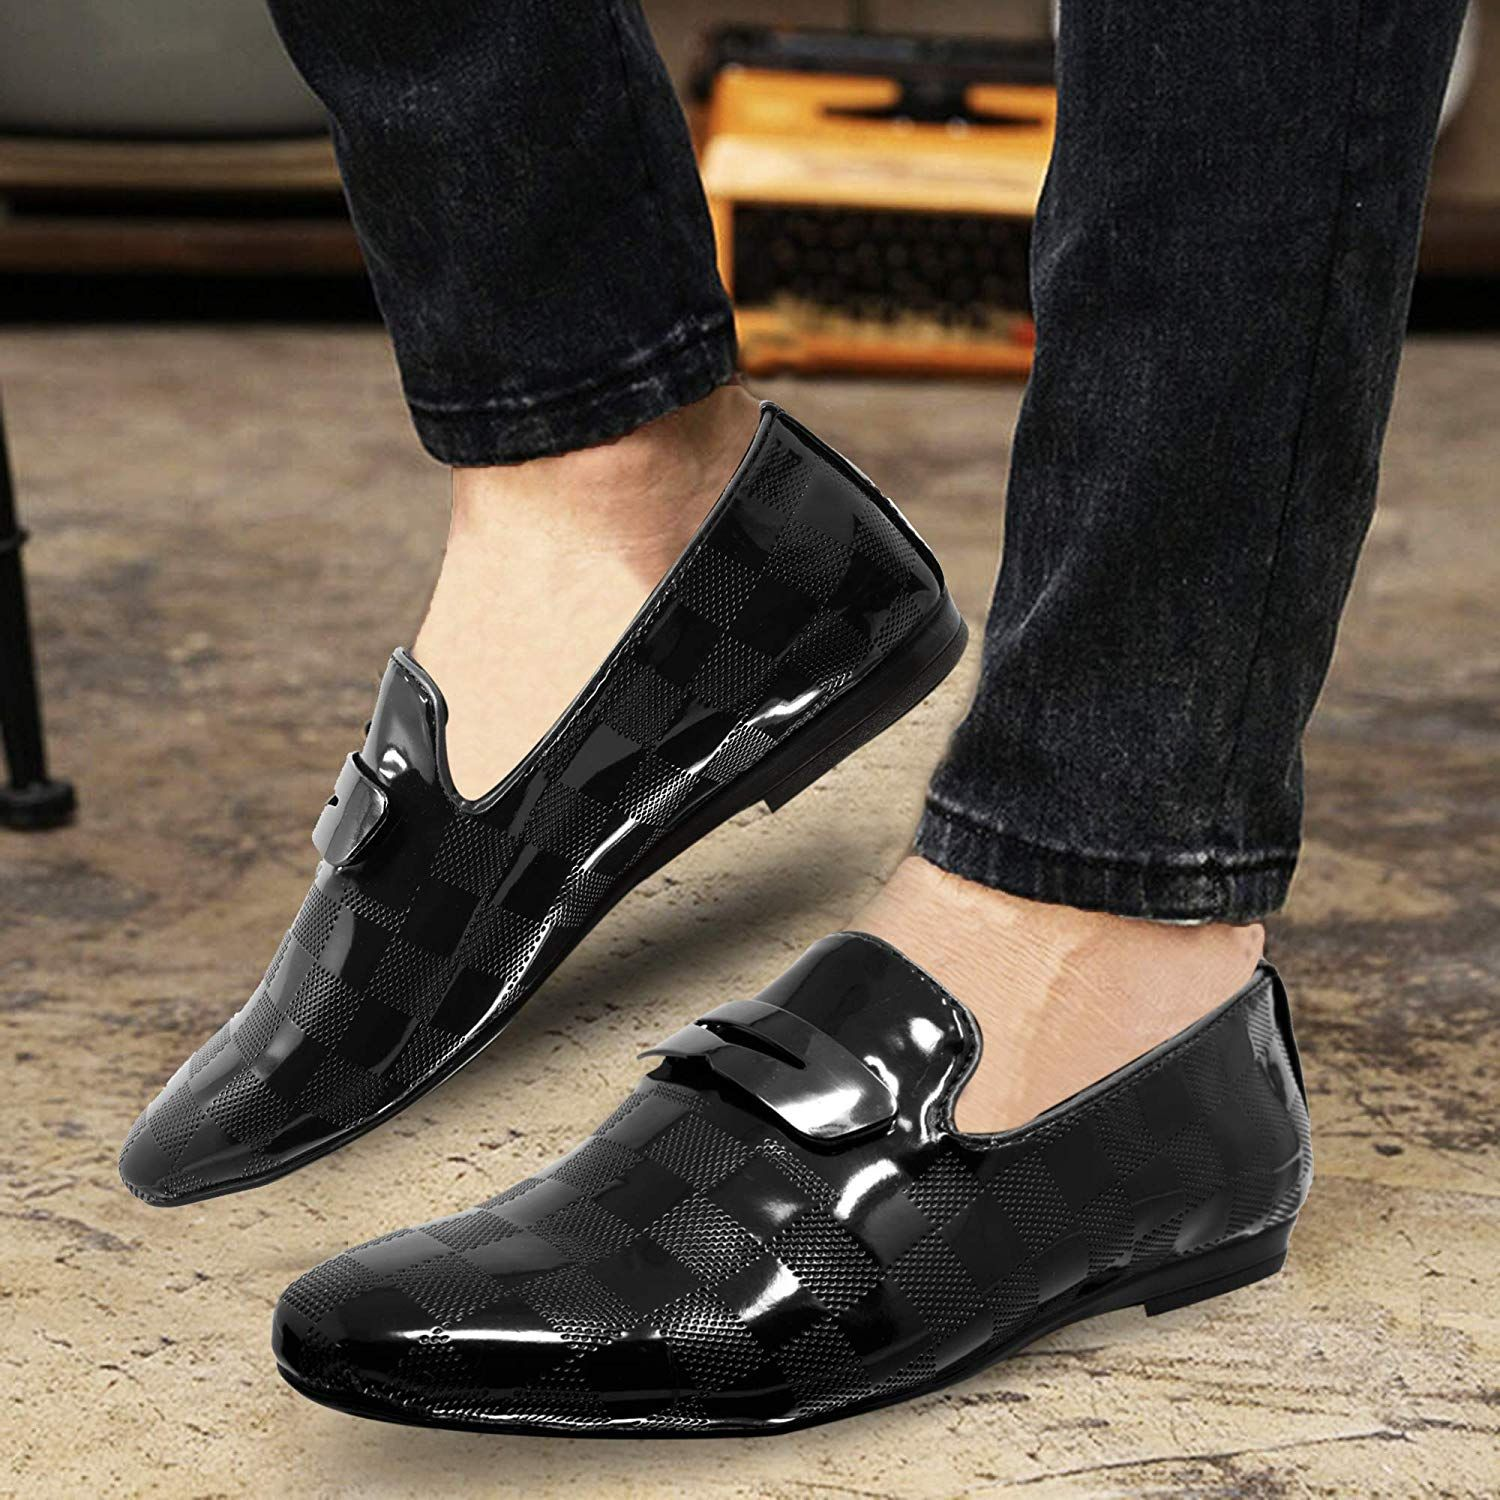 Mens Pointed Toe Derby Shiny Patent Evening Party Dress